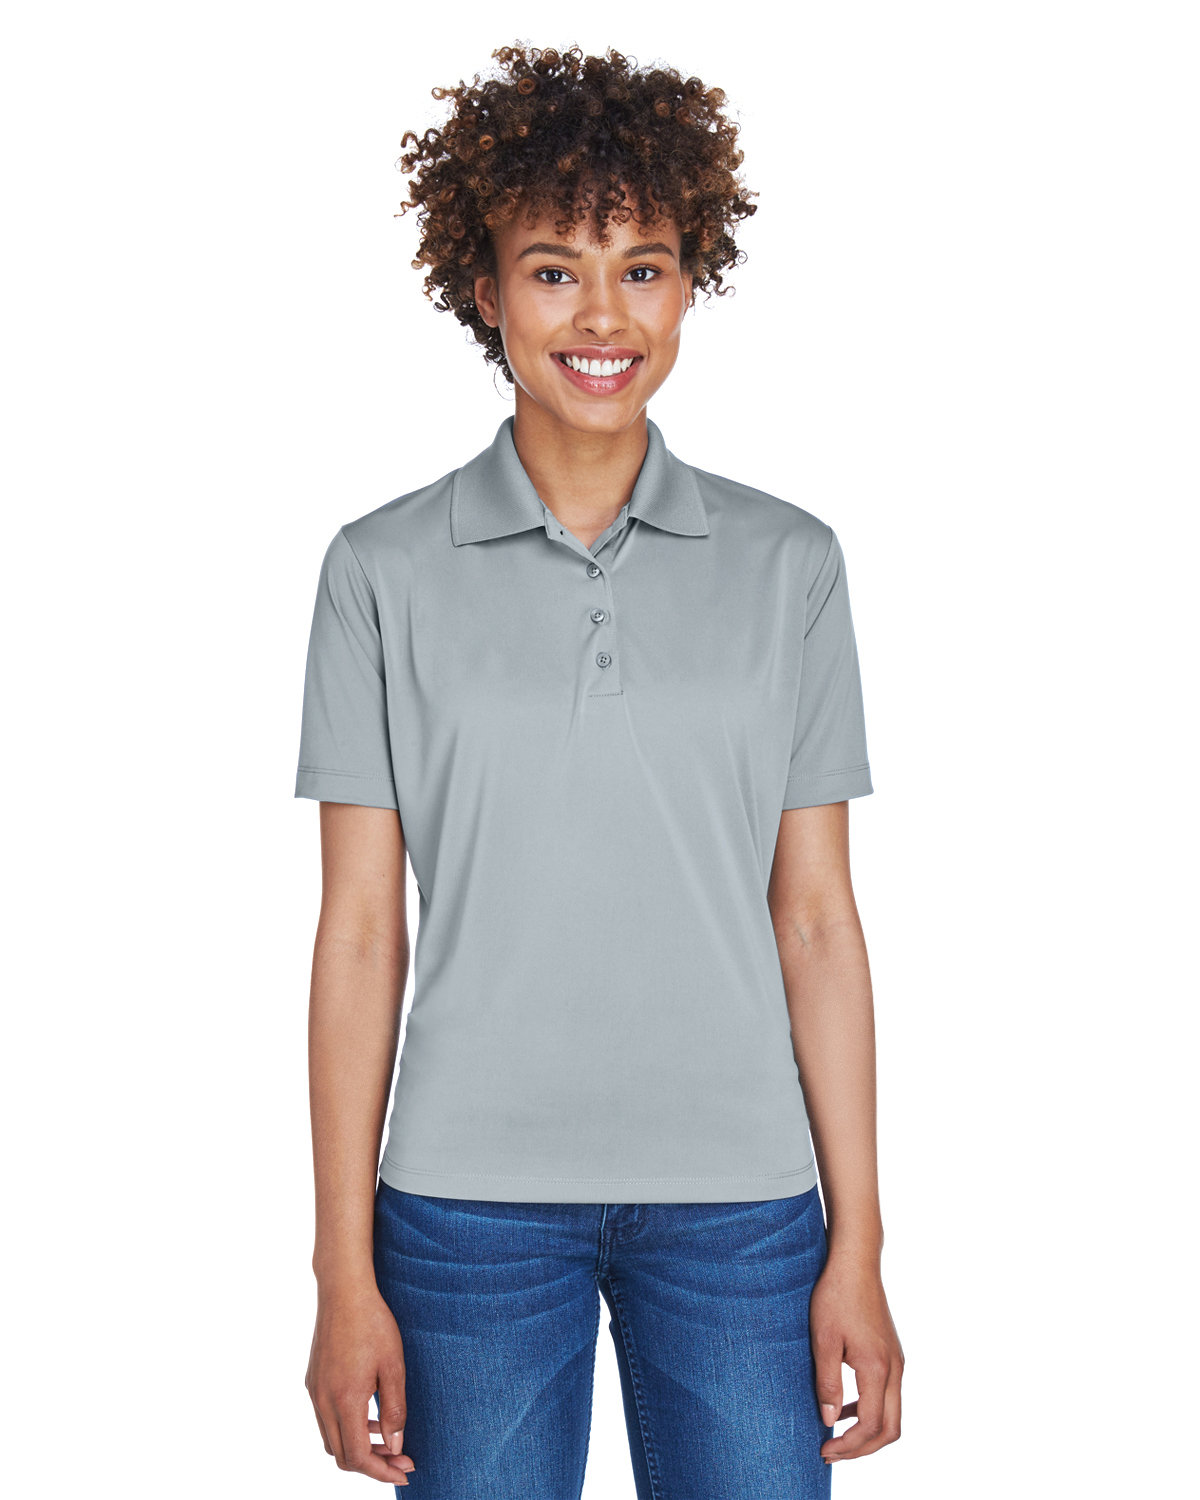 UltraClub Ladies' Cool & Dry 8-Star Elite Performance Interlock Polo SILVER